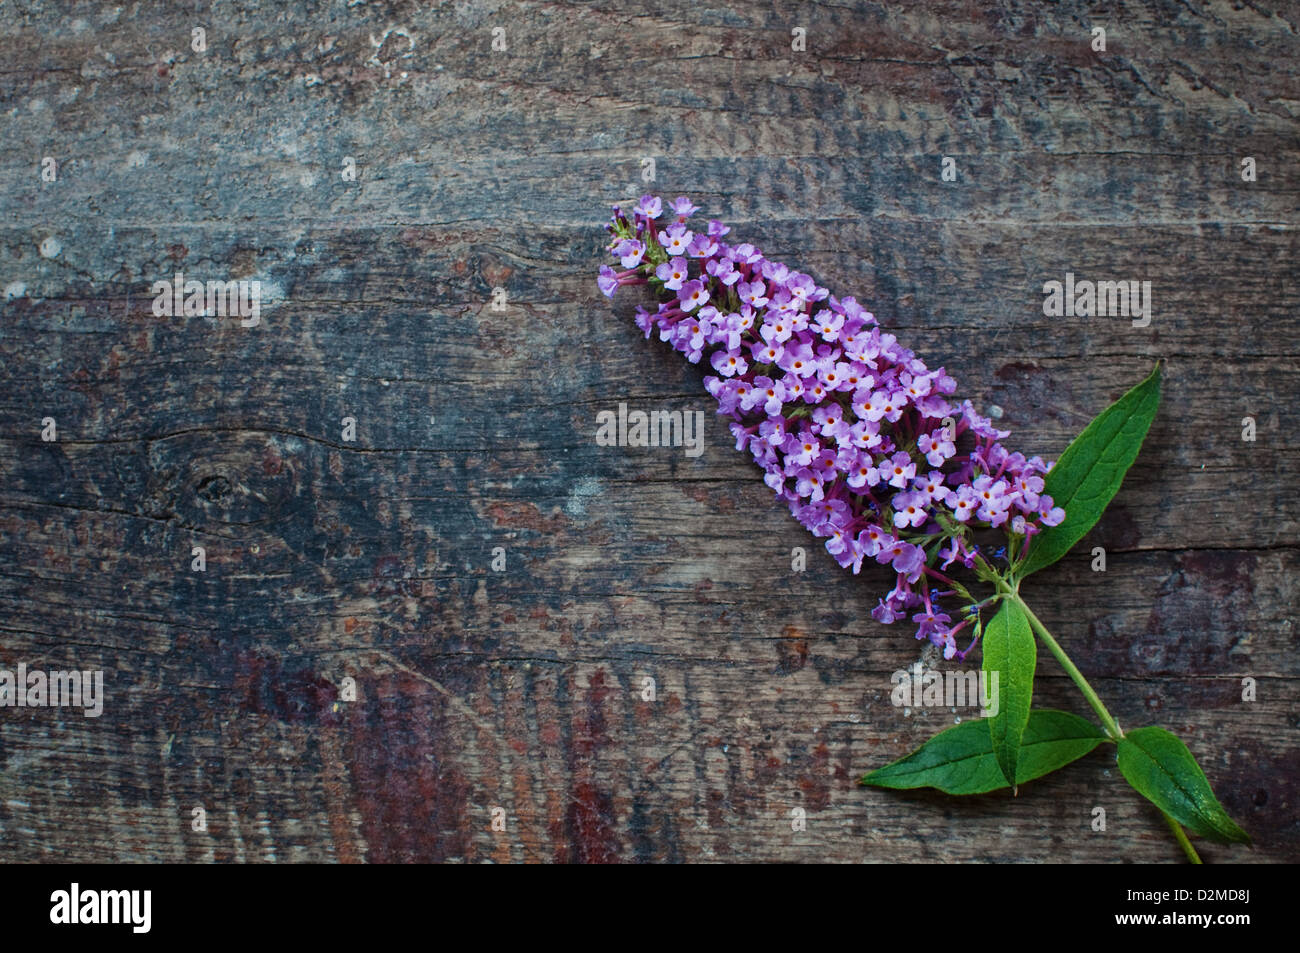 Beautiful lilac flower over a grungy wooden background - Stock Image